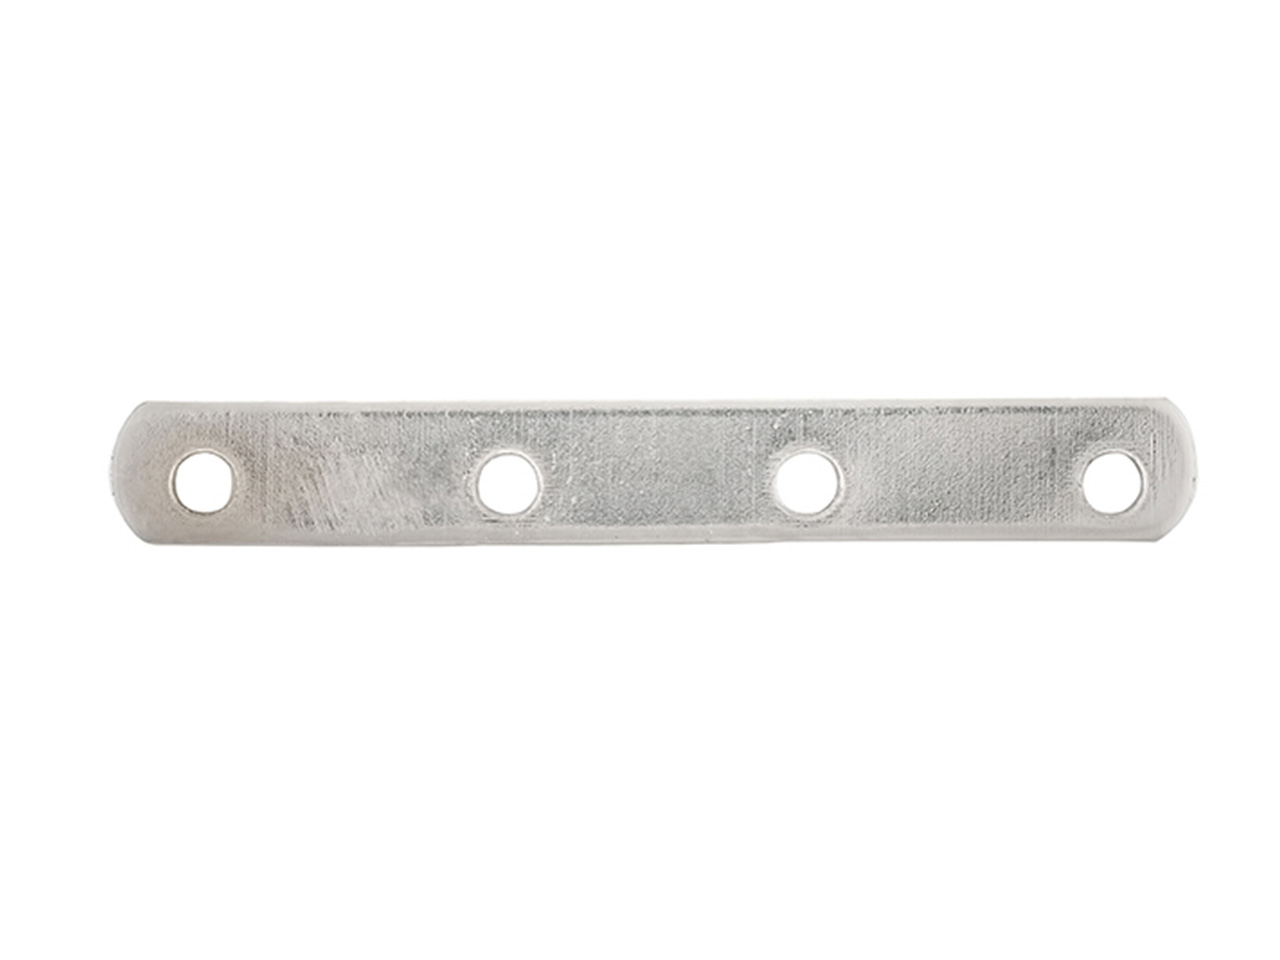 Intercalaire barrette 4 trous 18 mm, Or gris 18k